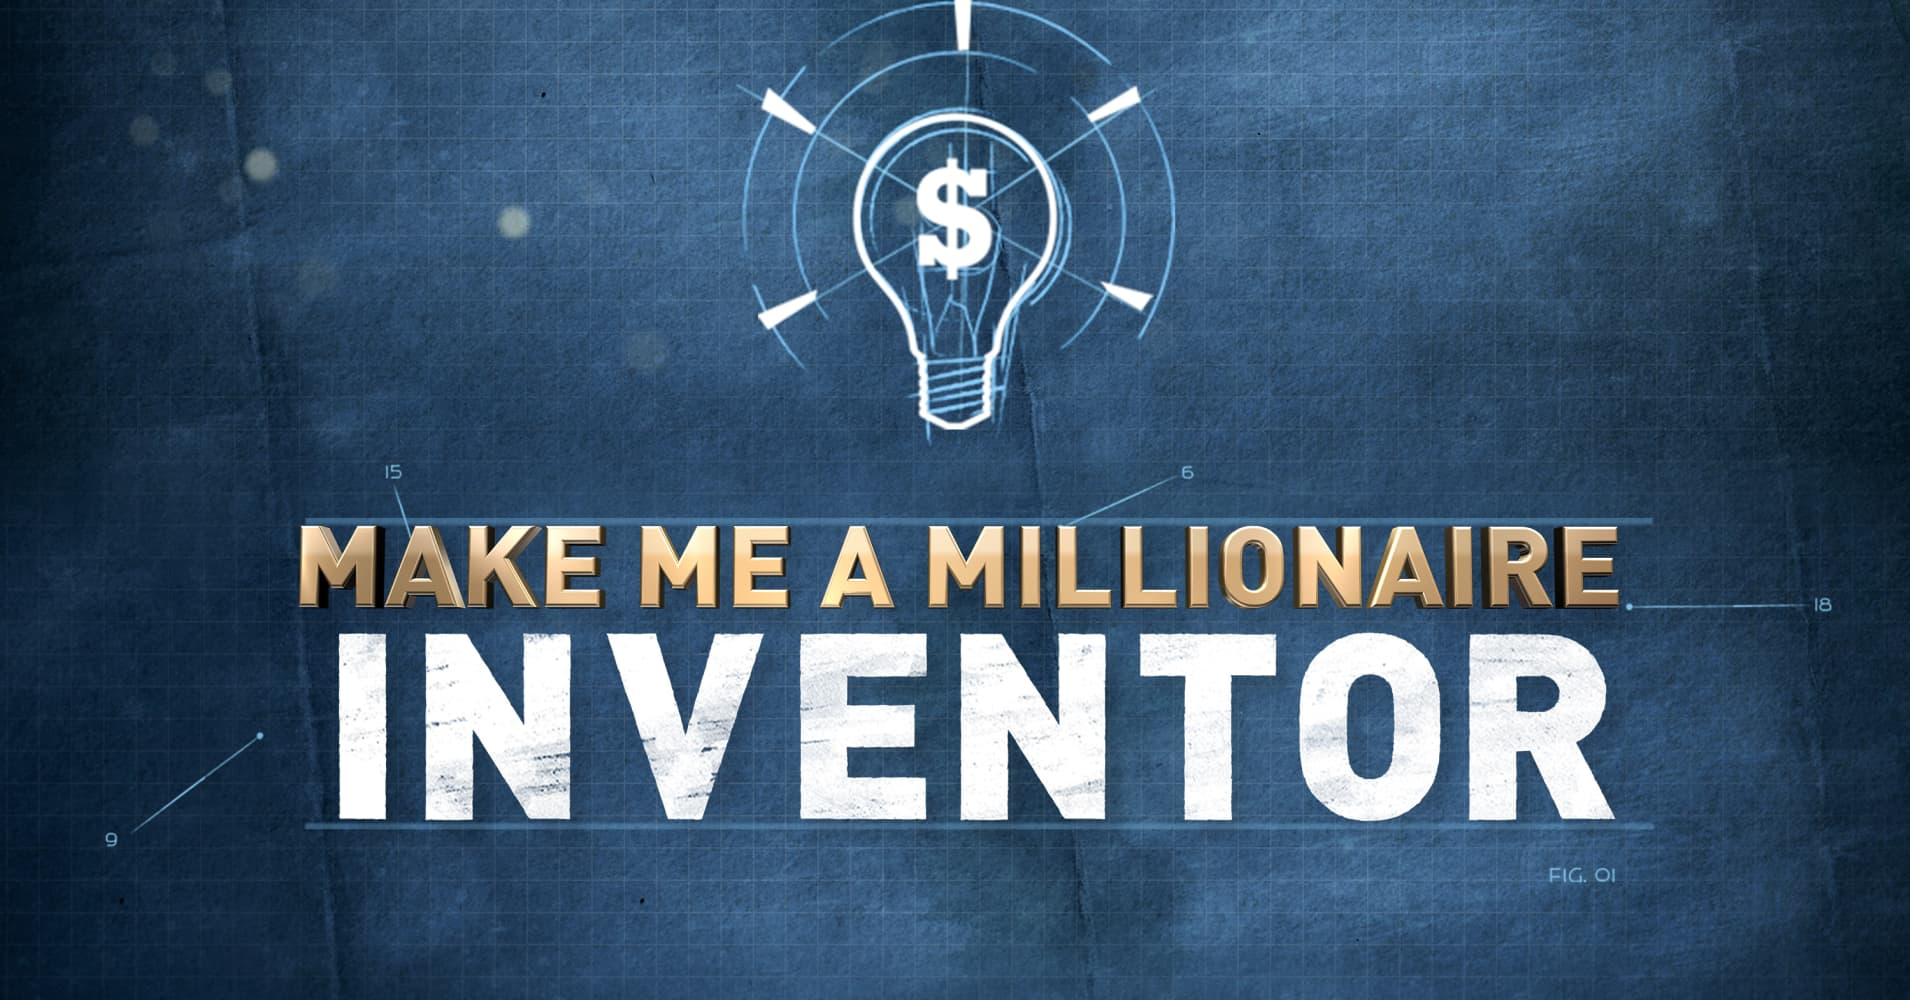 Make me a millionaire inventor home cnbc prime for Build me a home